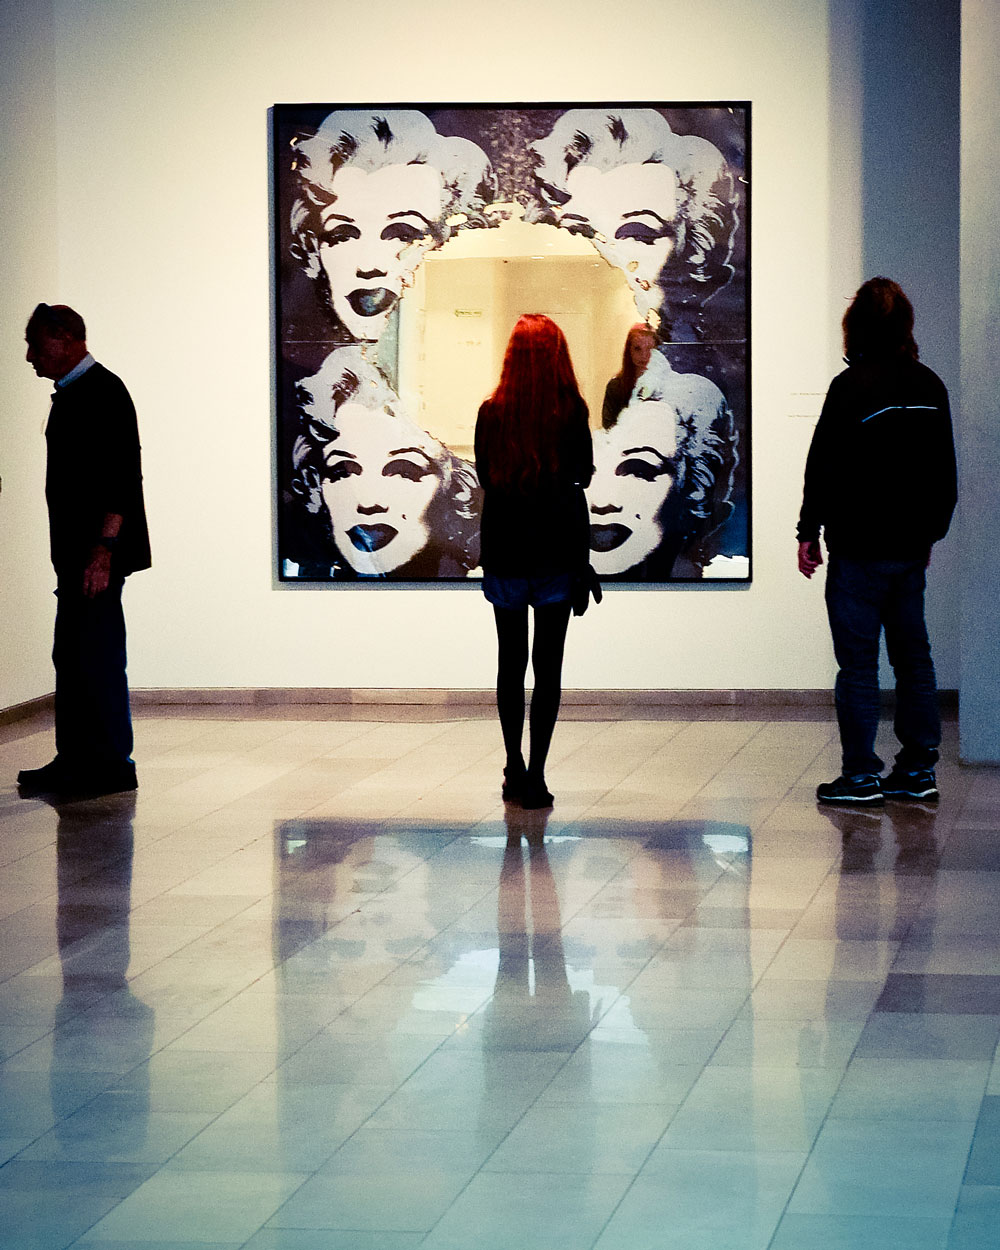 People standing in a museum looking at a painting